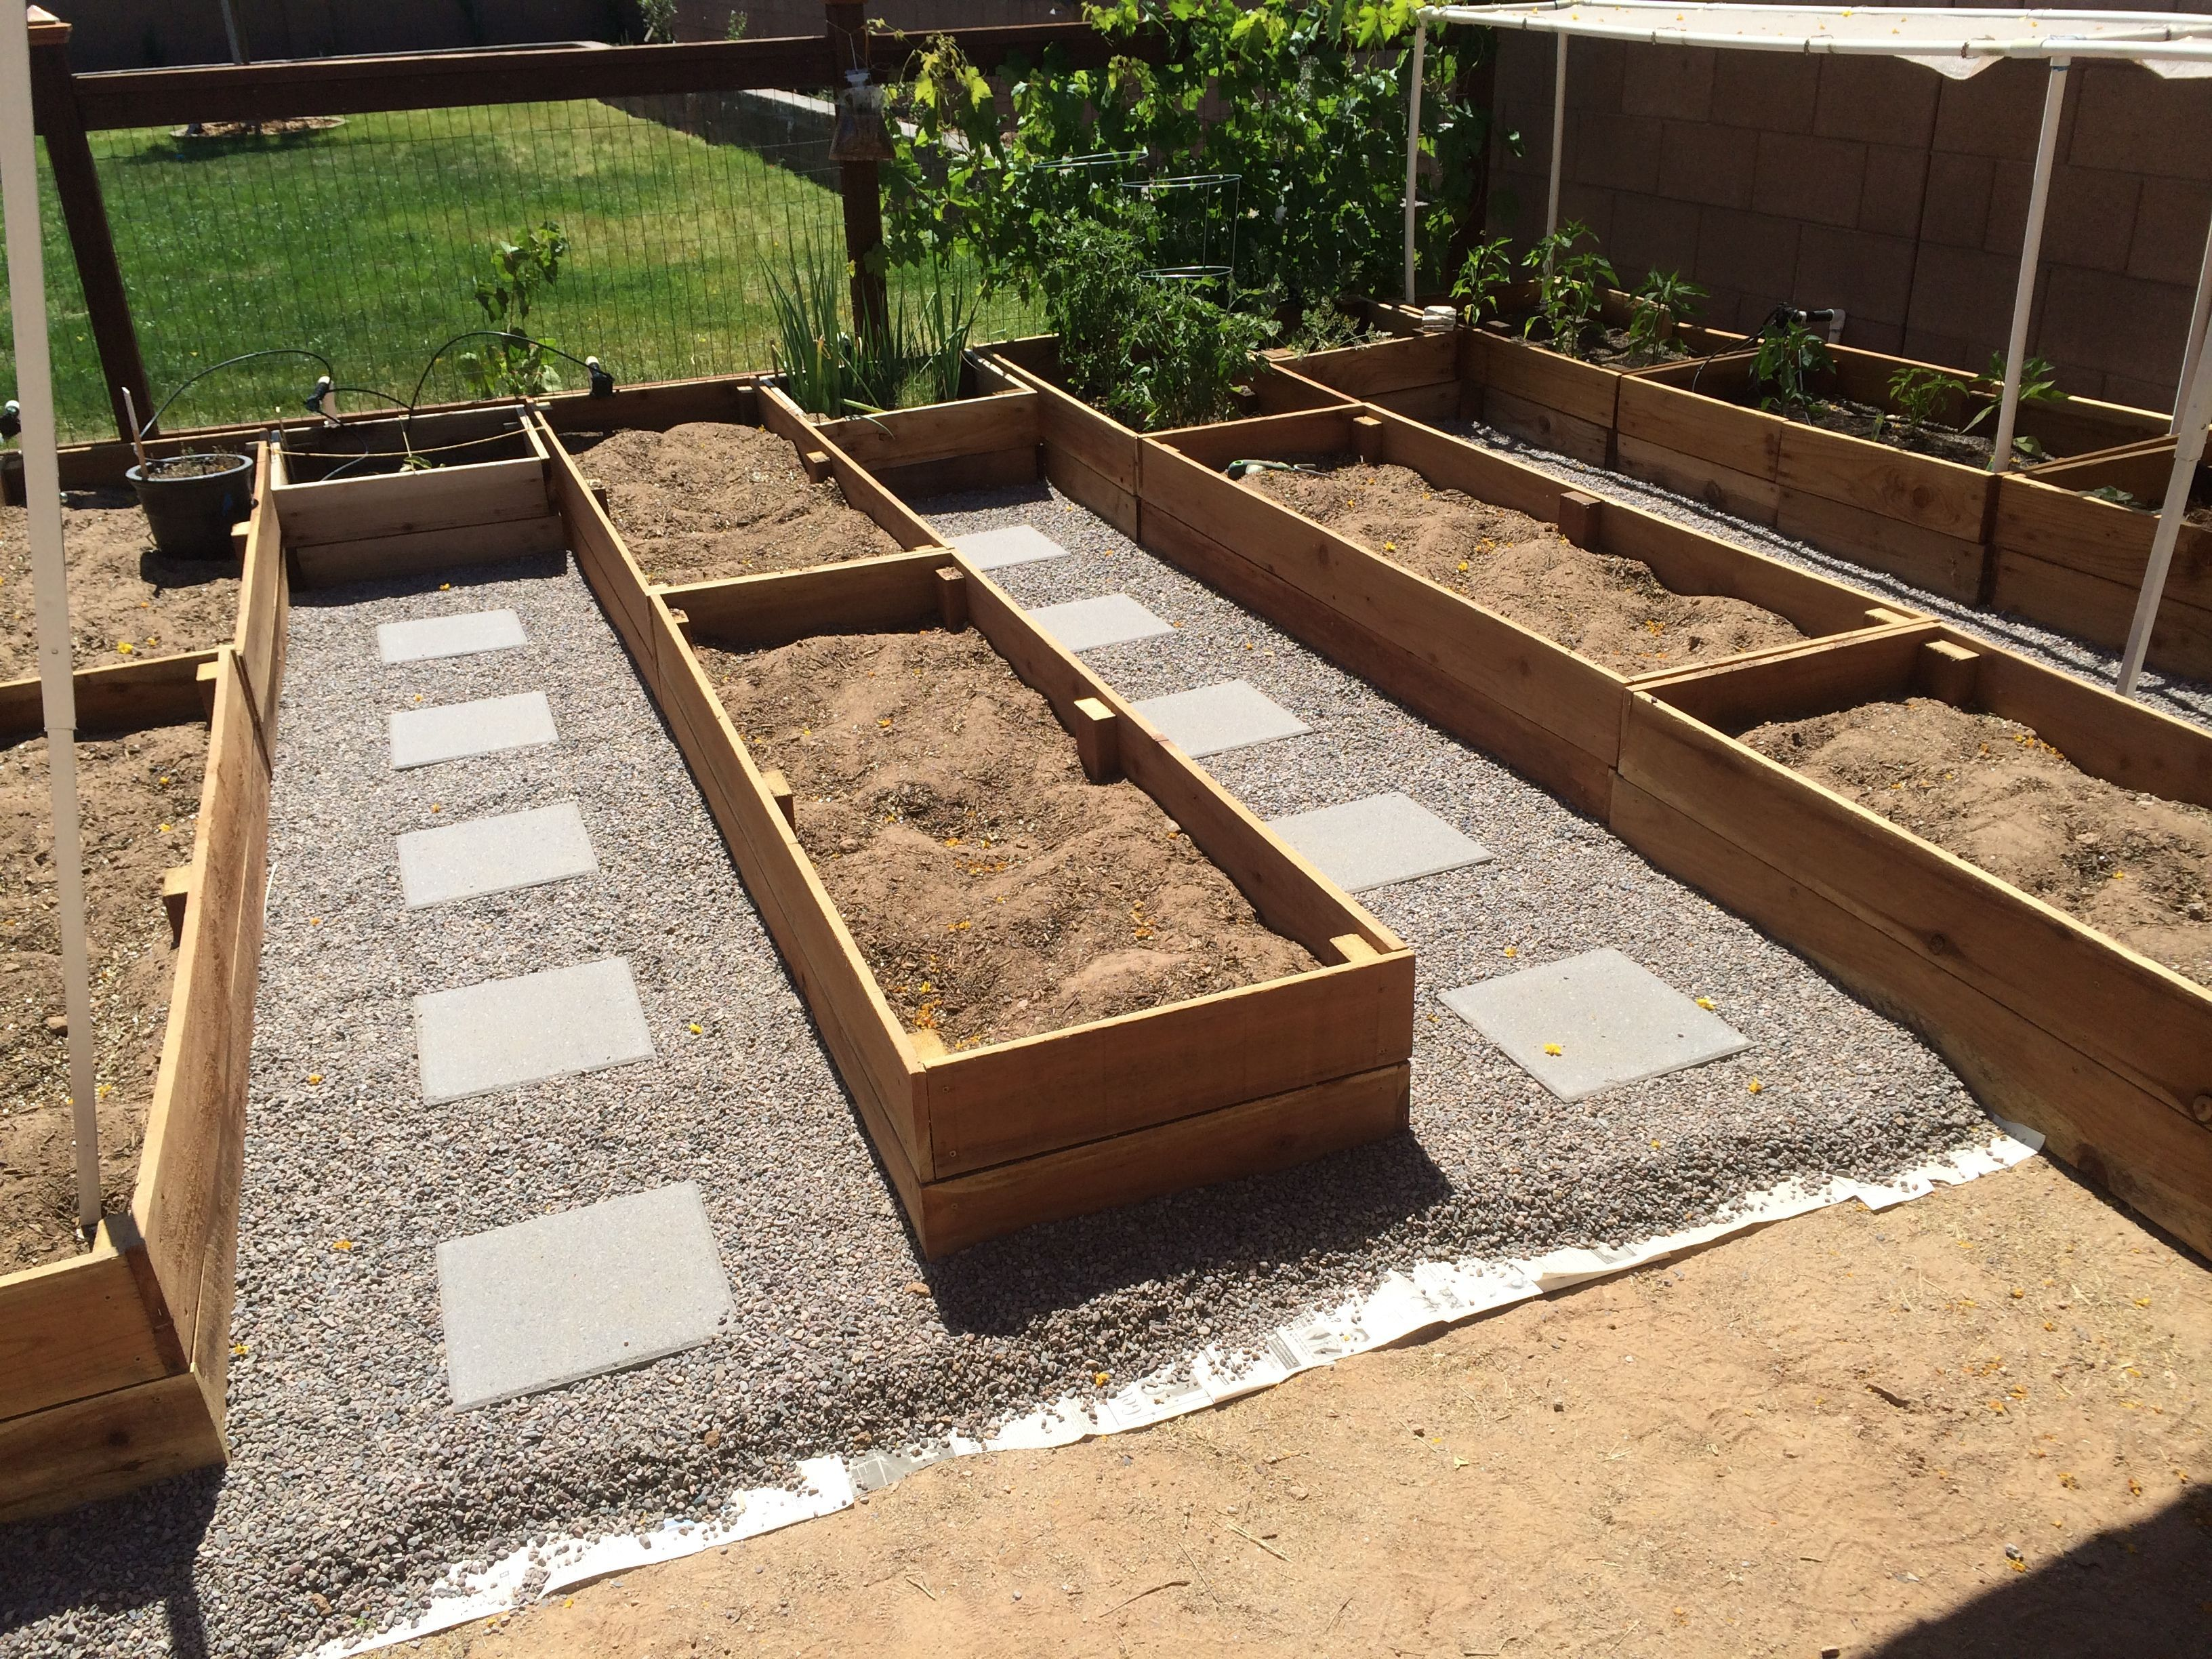 Building Redwood Raised Garden Beds | Handmade and Homegrown ...